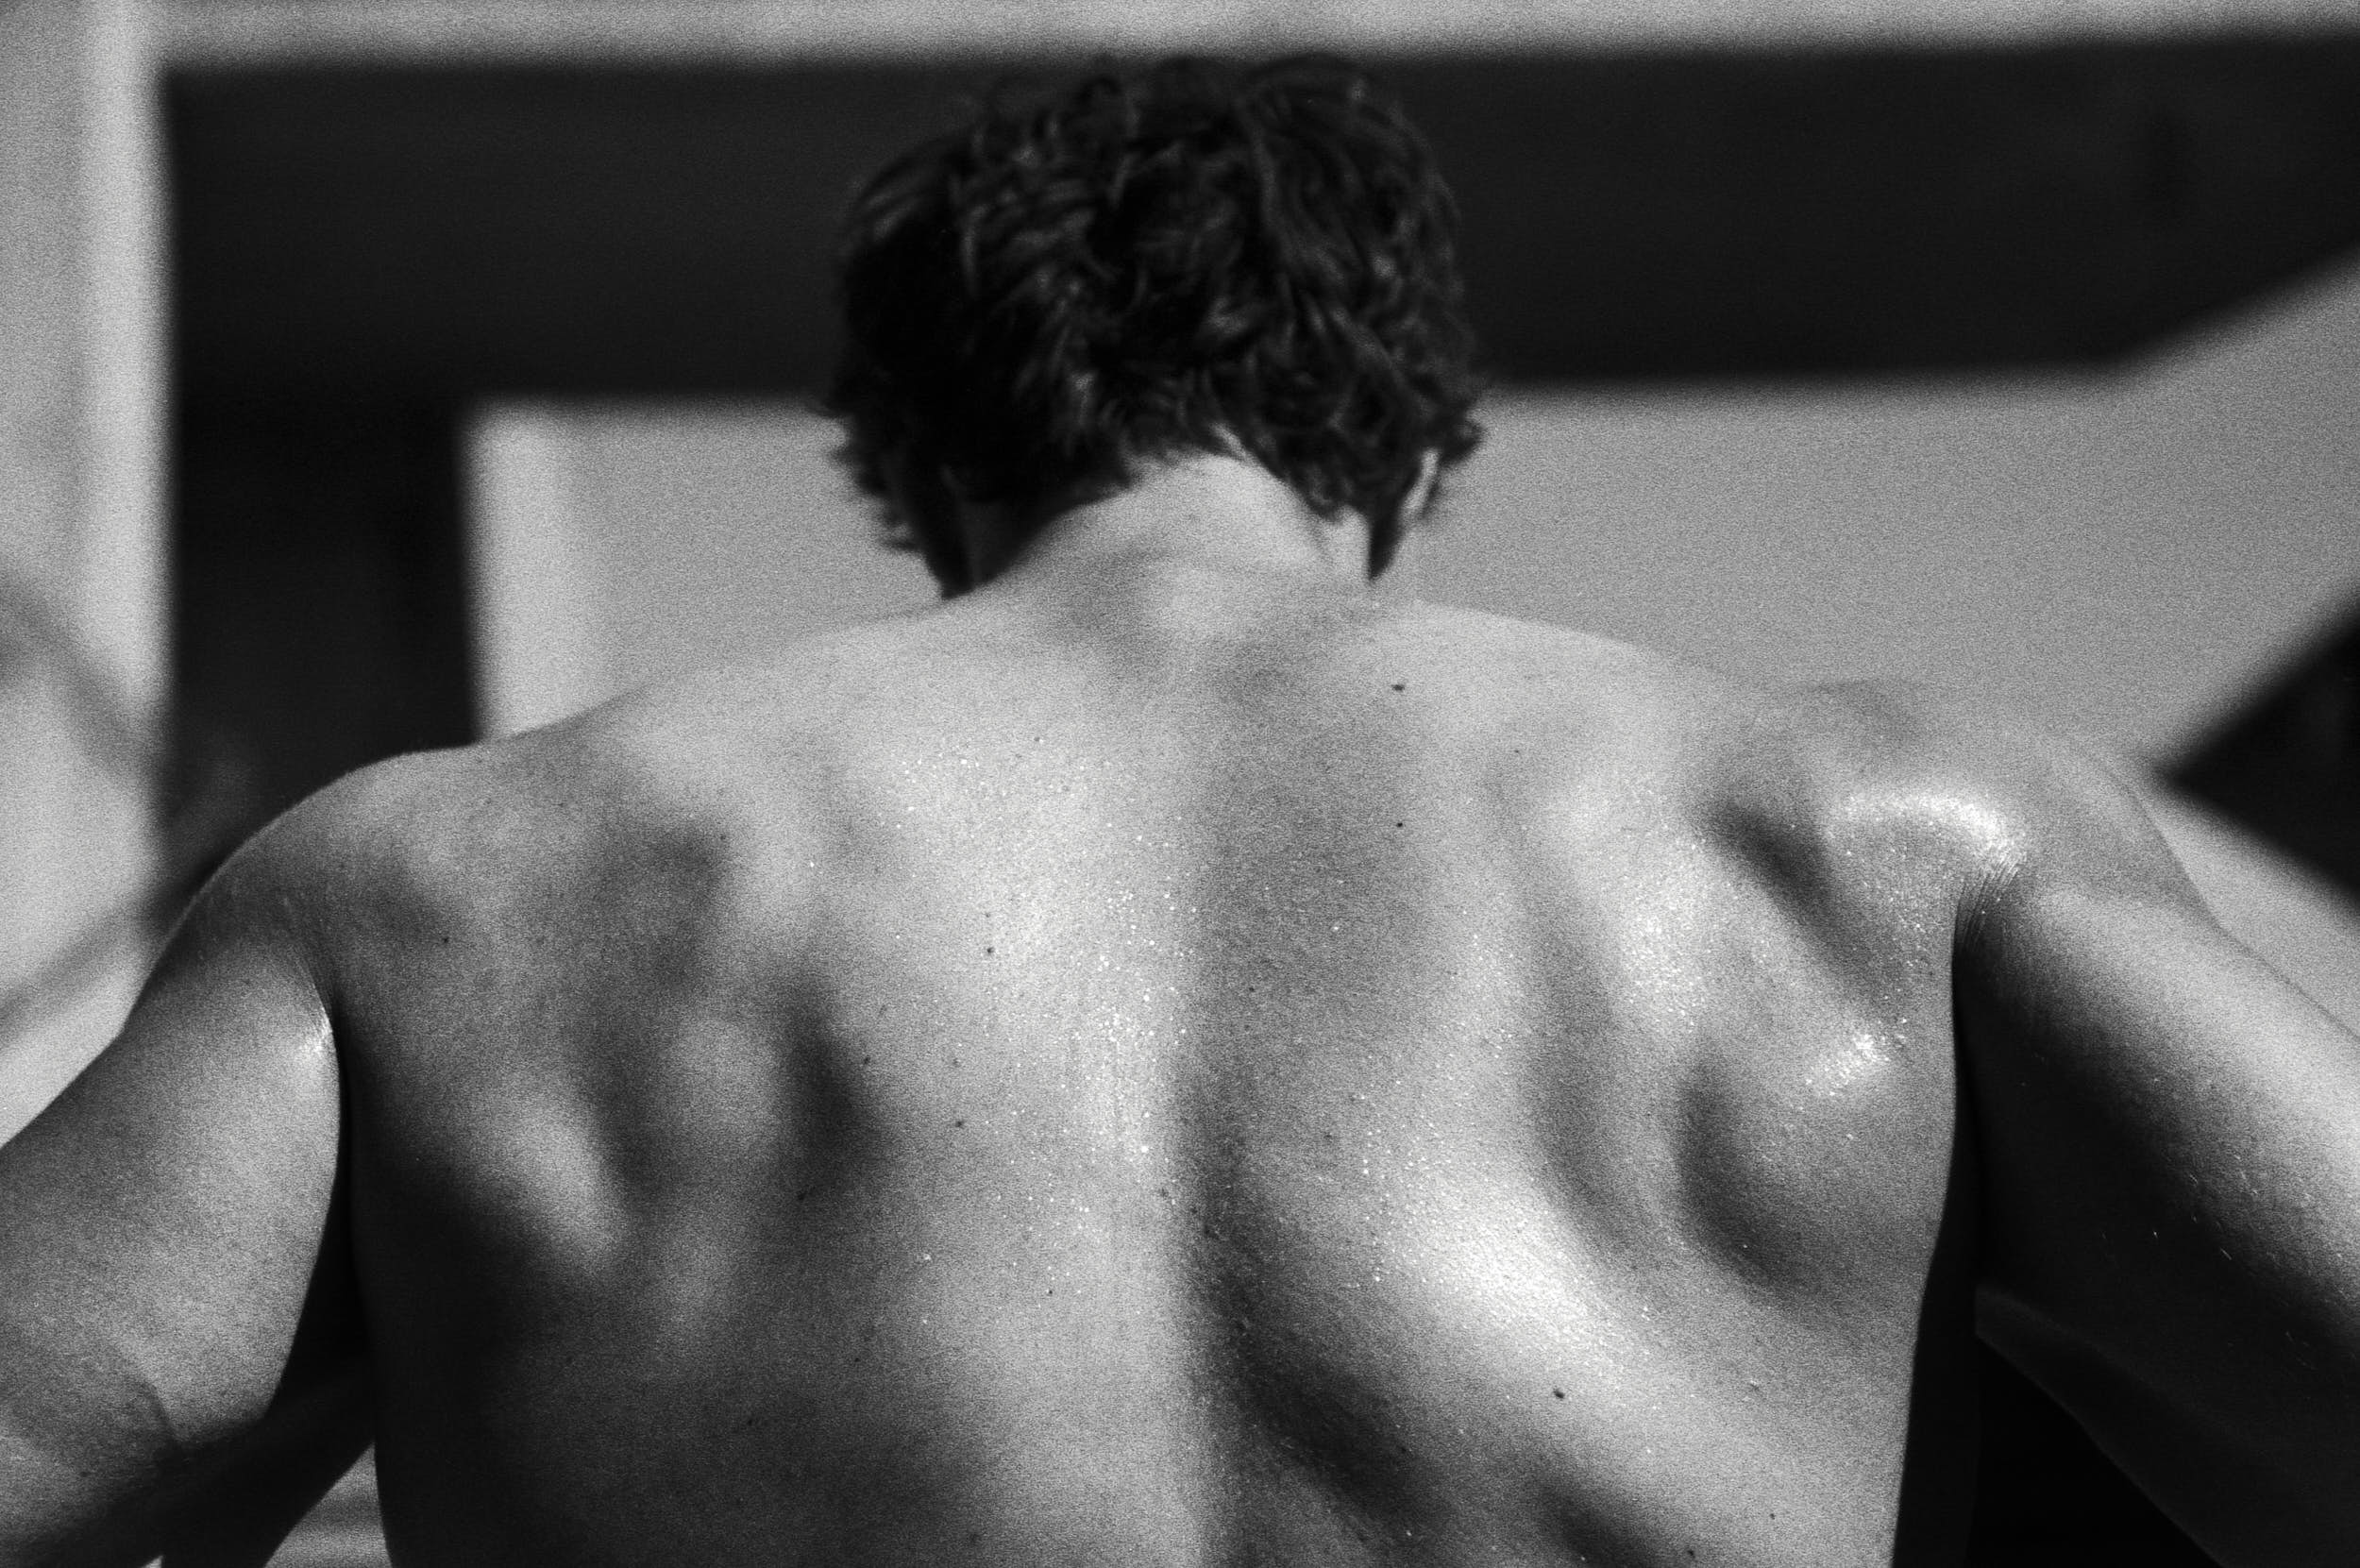 Black and white fitness photography: close up of a muscular back of an athlete.